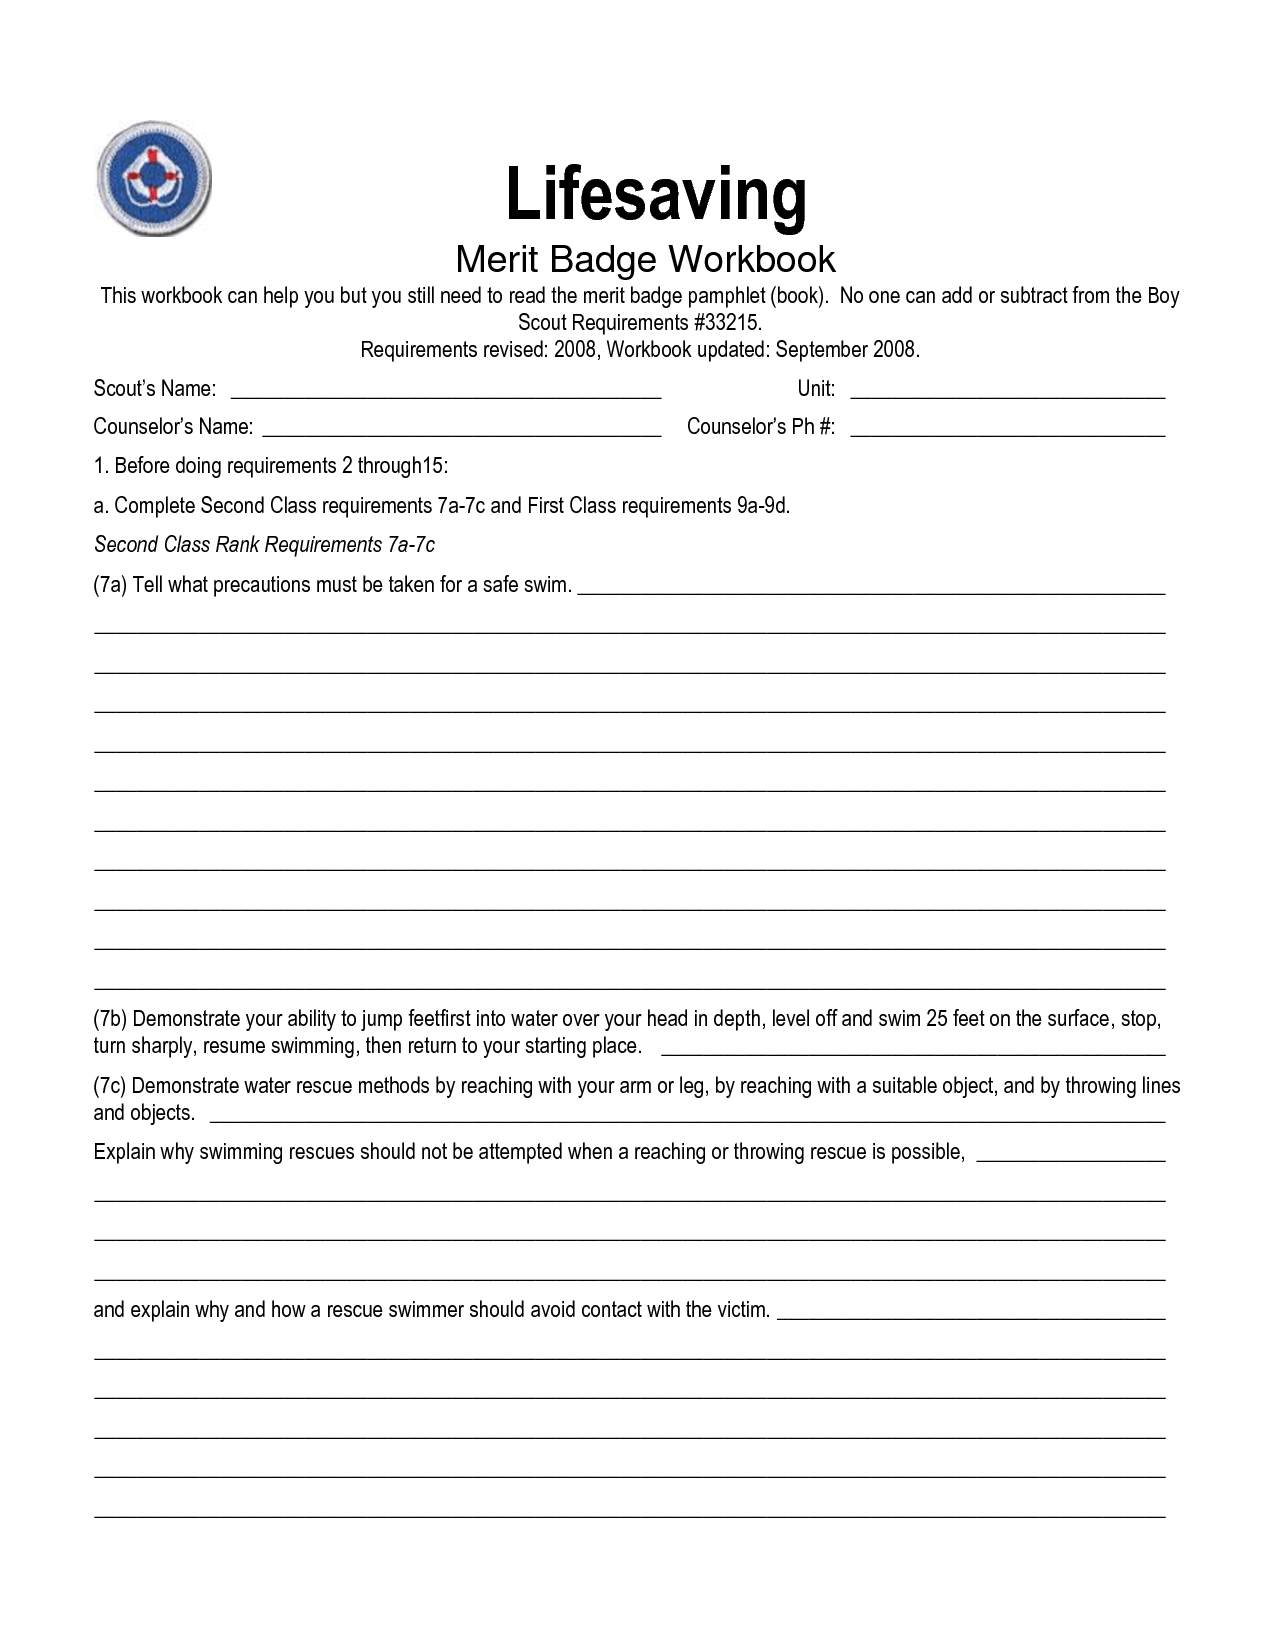 Personal Management Worksheet Answers